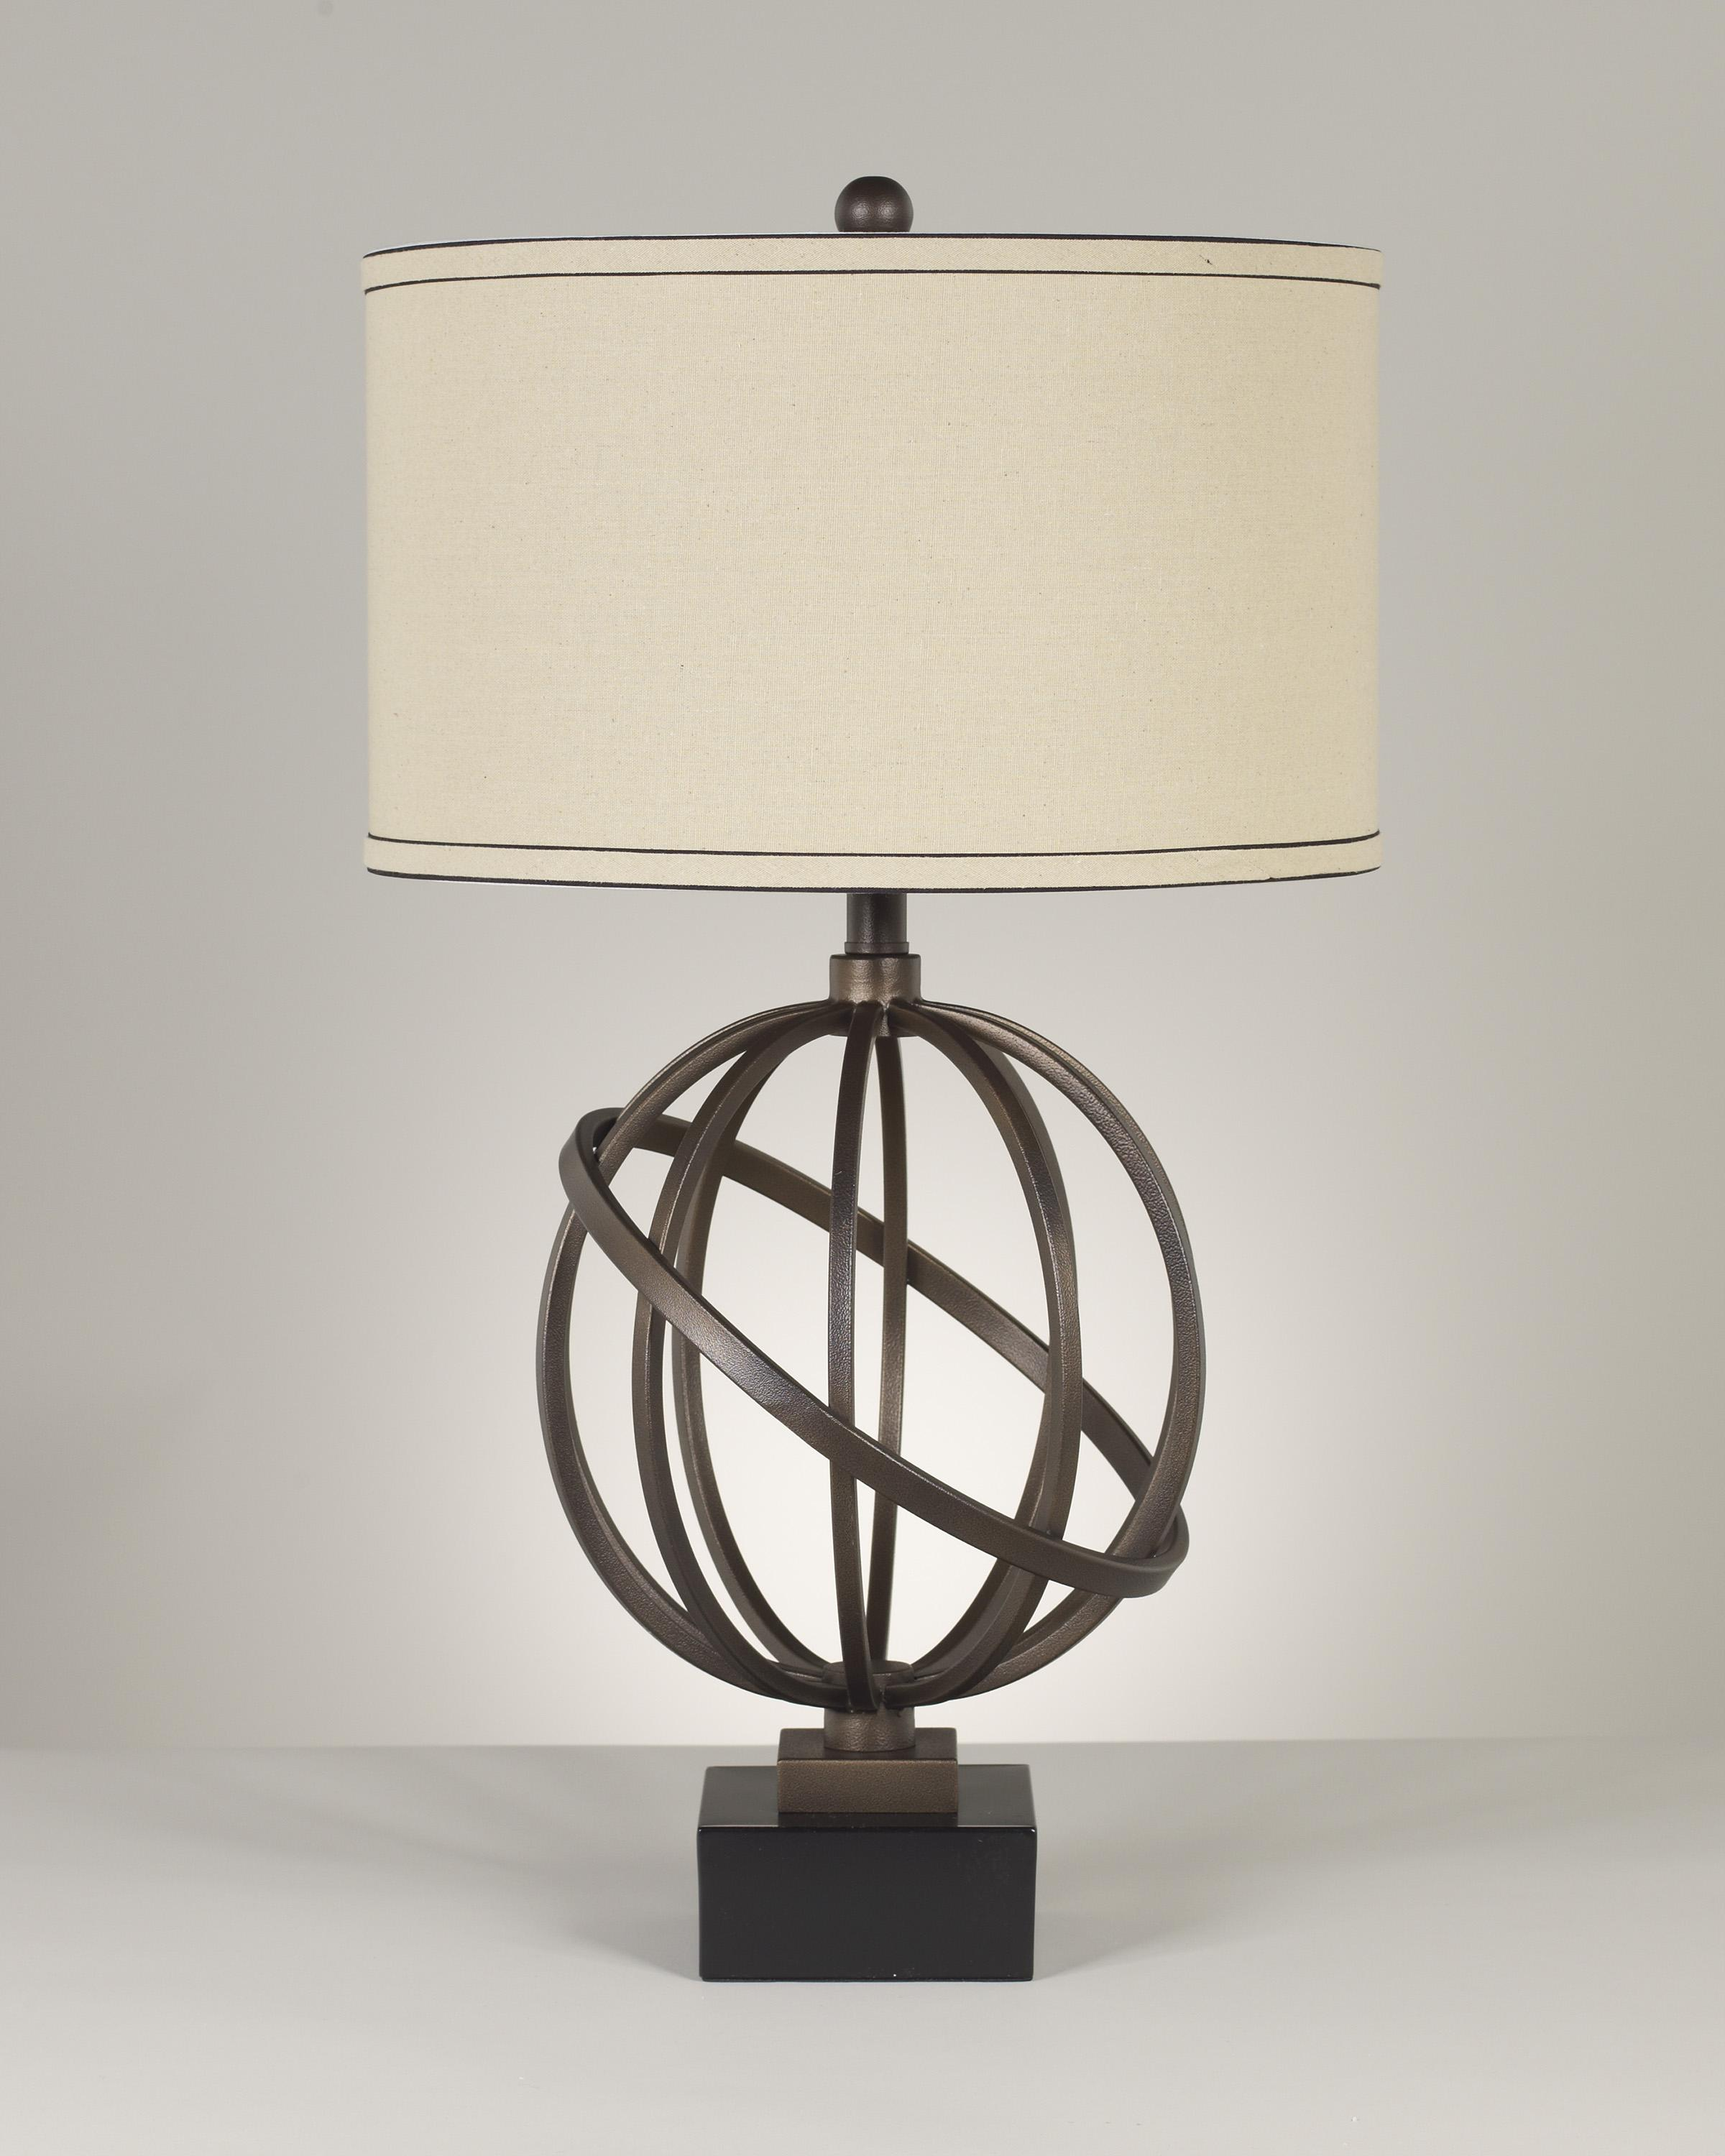 Signature Design by Ashley Lamps - Contemporary Set of 2 Shadell Metal Table Lamps - Item Number: L211894